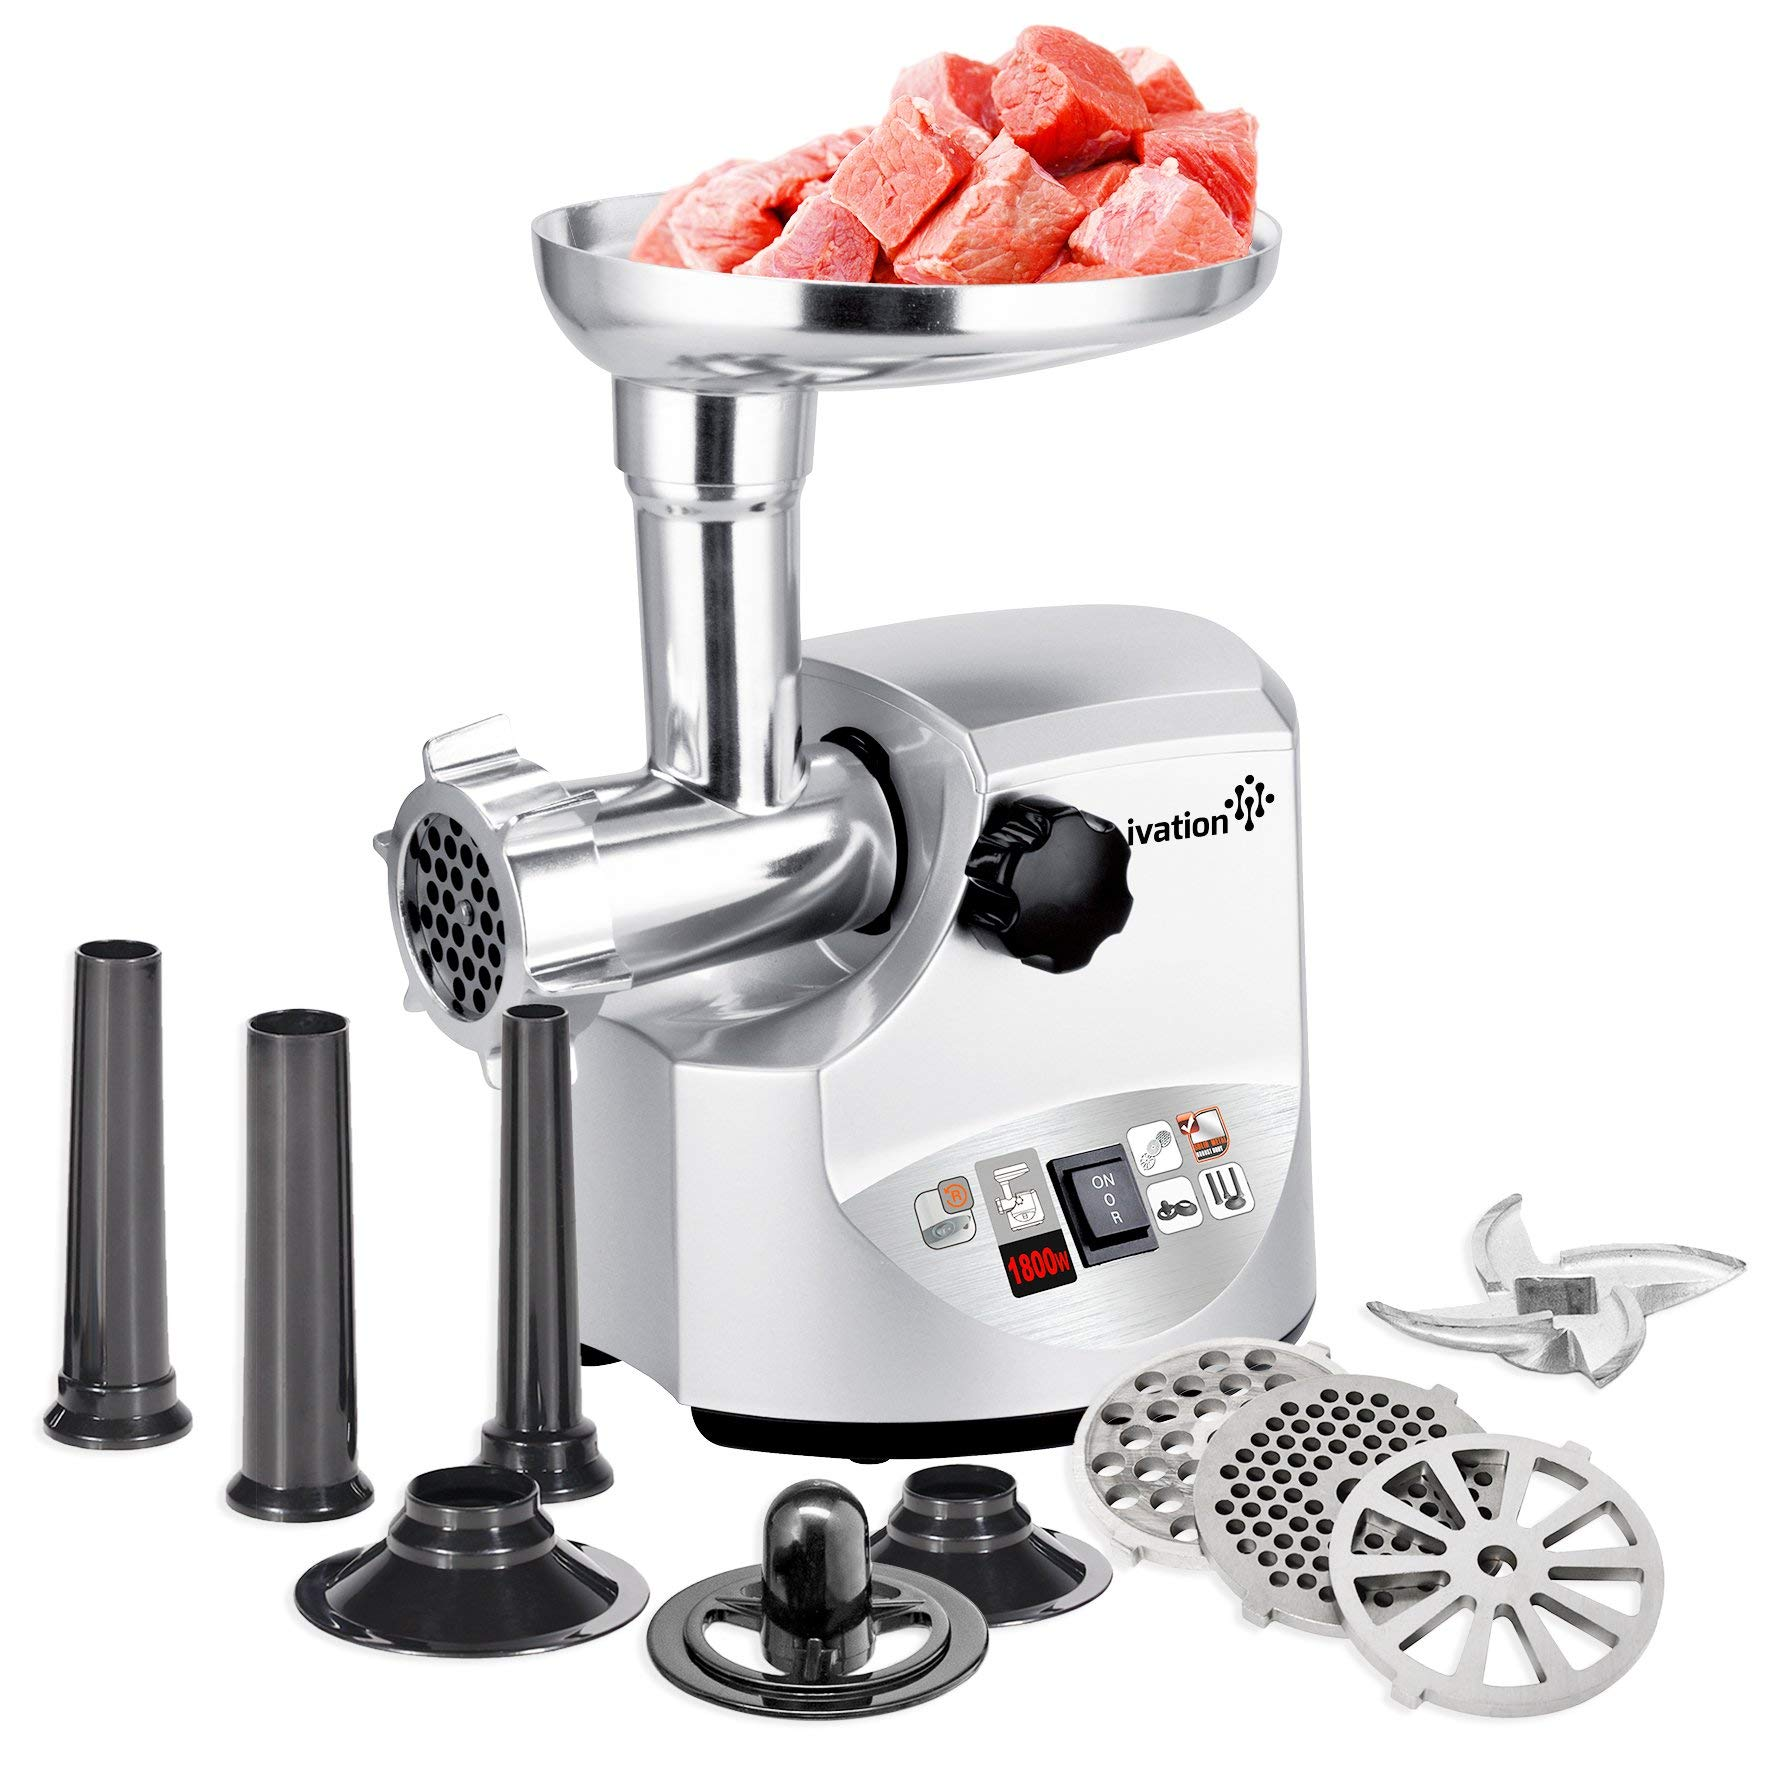 Ivation 2.5hp Electric Meat Grinder Mincer 1800 Watt, Sausage Stuffer - Heavy Duty - 3 Stainless Steel Cutting Blades, Sausage Stuffing Tubes & Kibbe Attachment - ETL Certified by Ivation